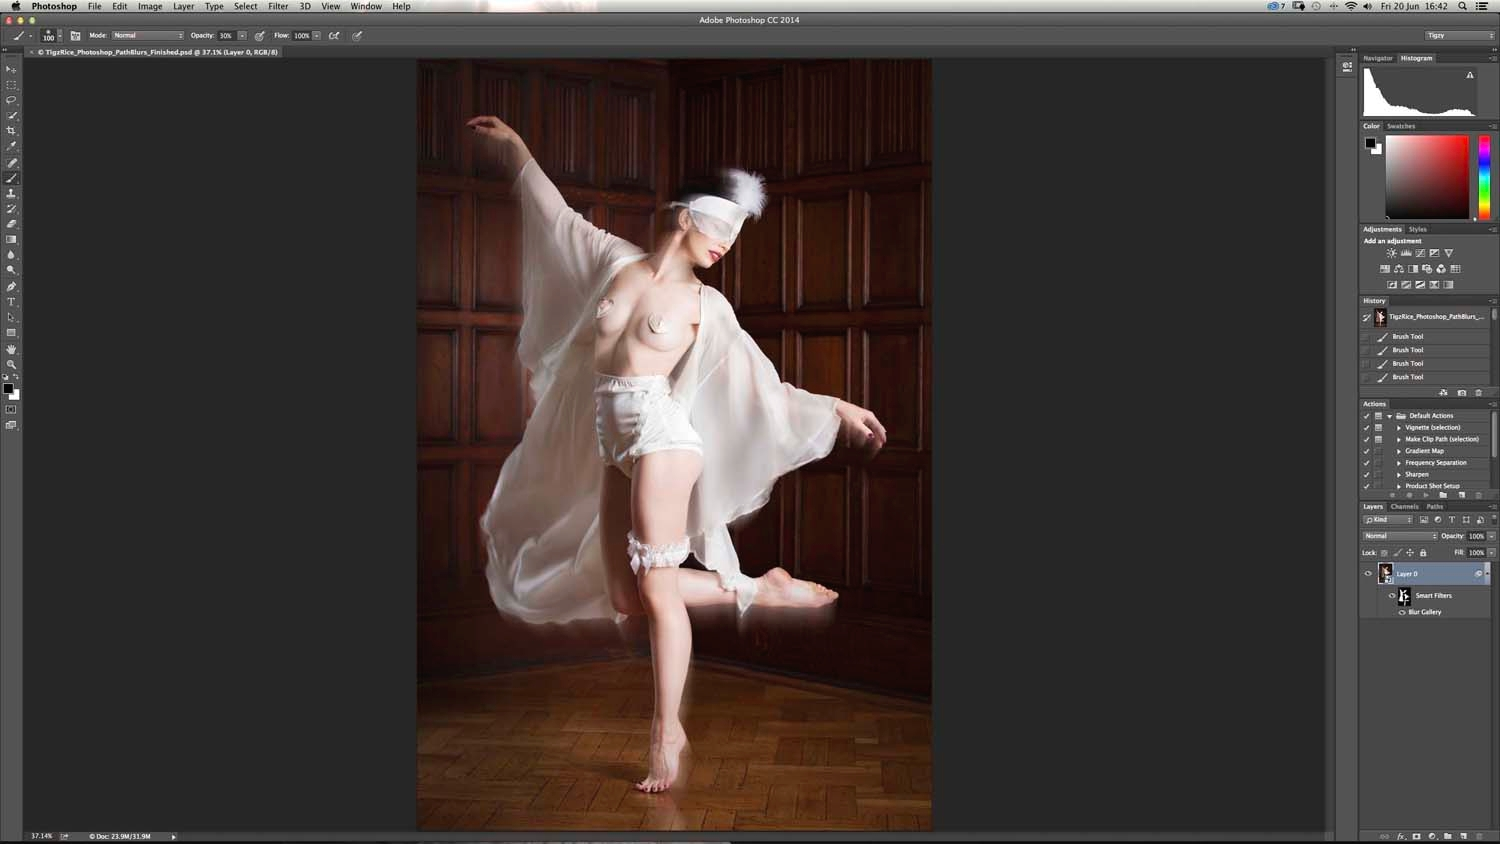 Latest release of Photoshop